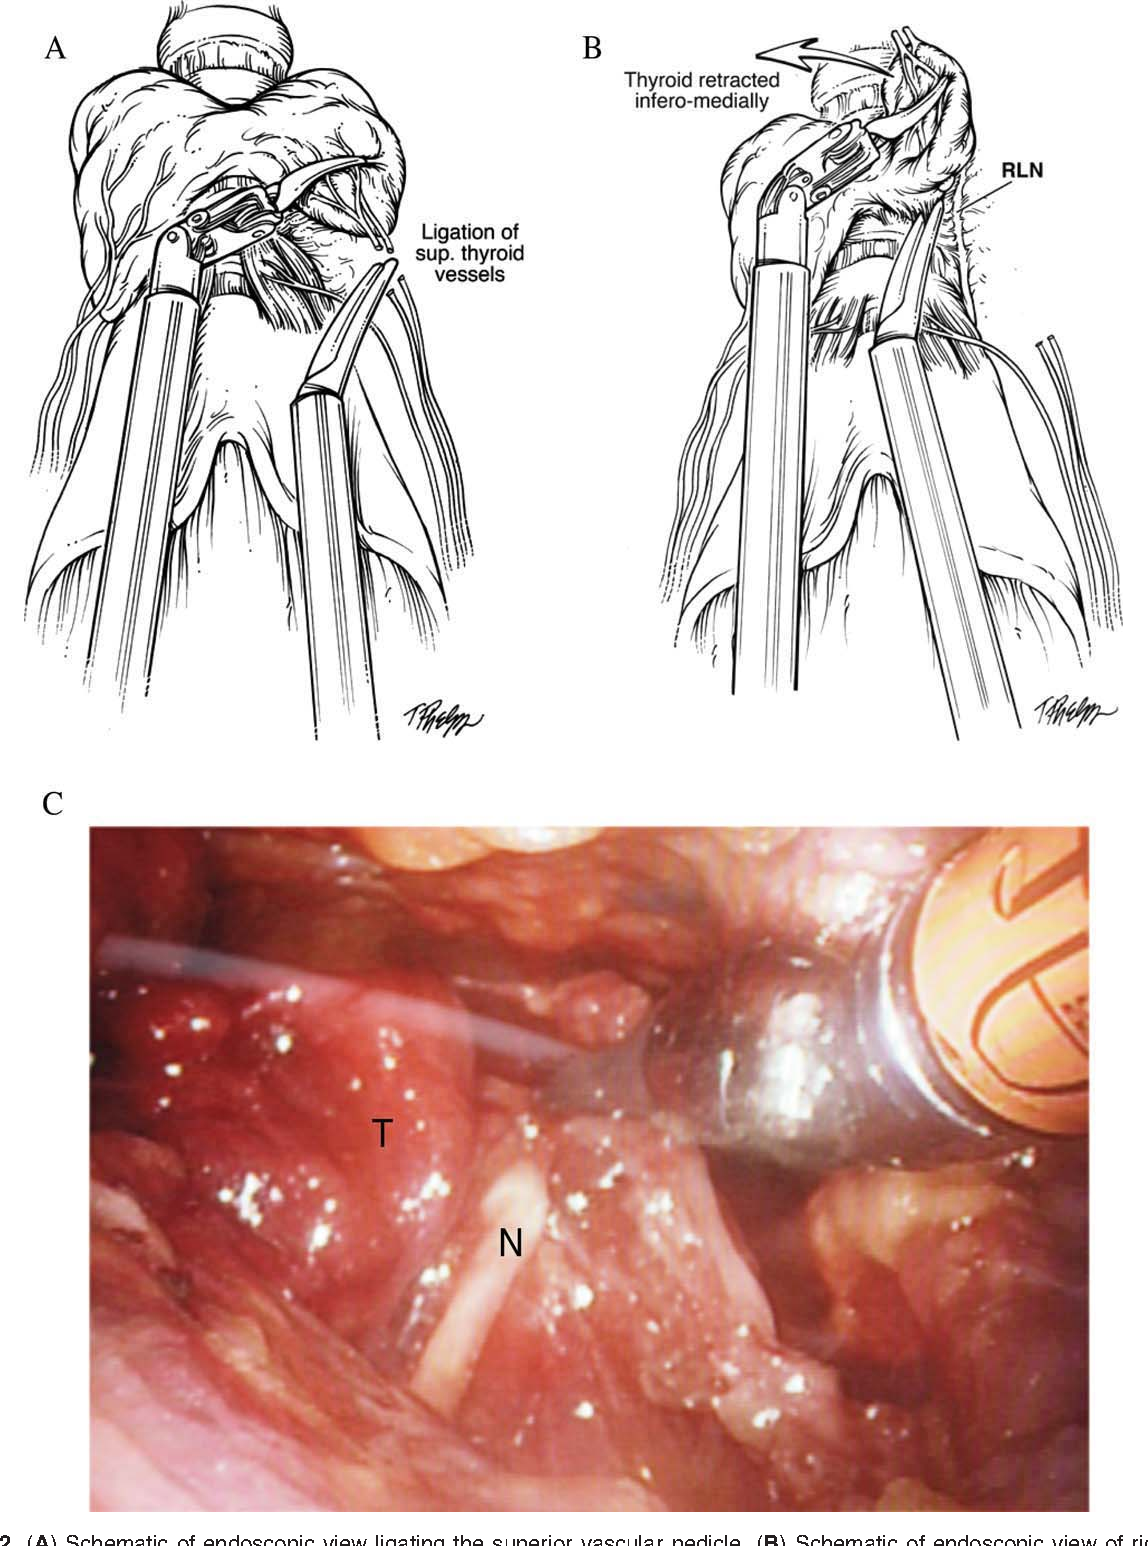 Transoral robotic-assisted thyroidectomy: a preclinical feasibility ...